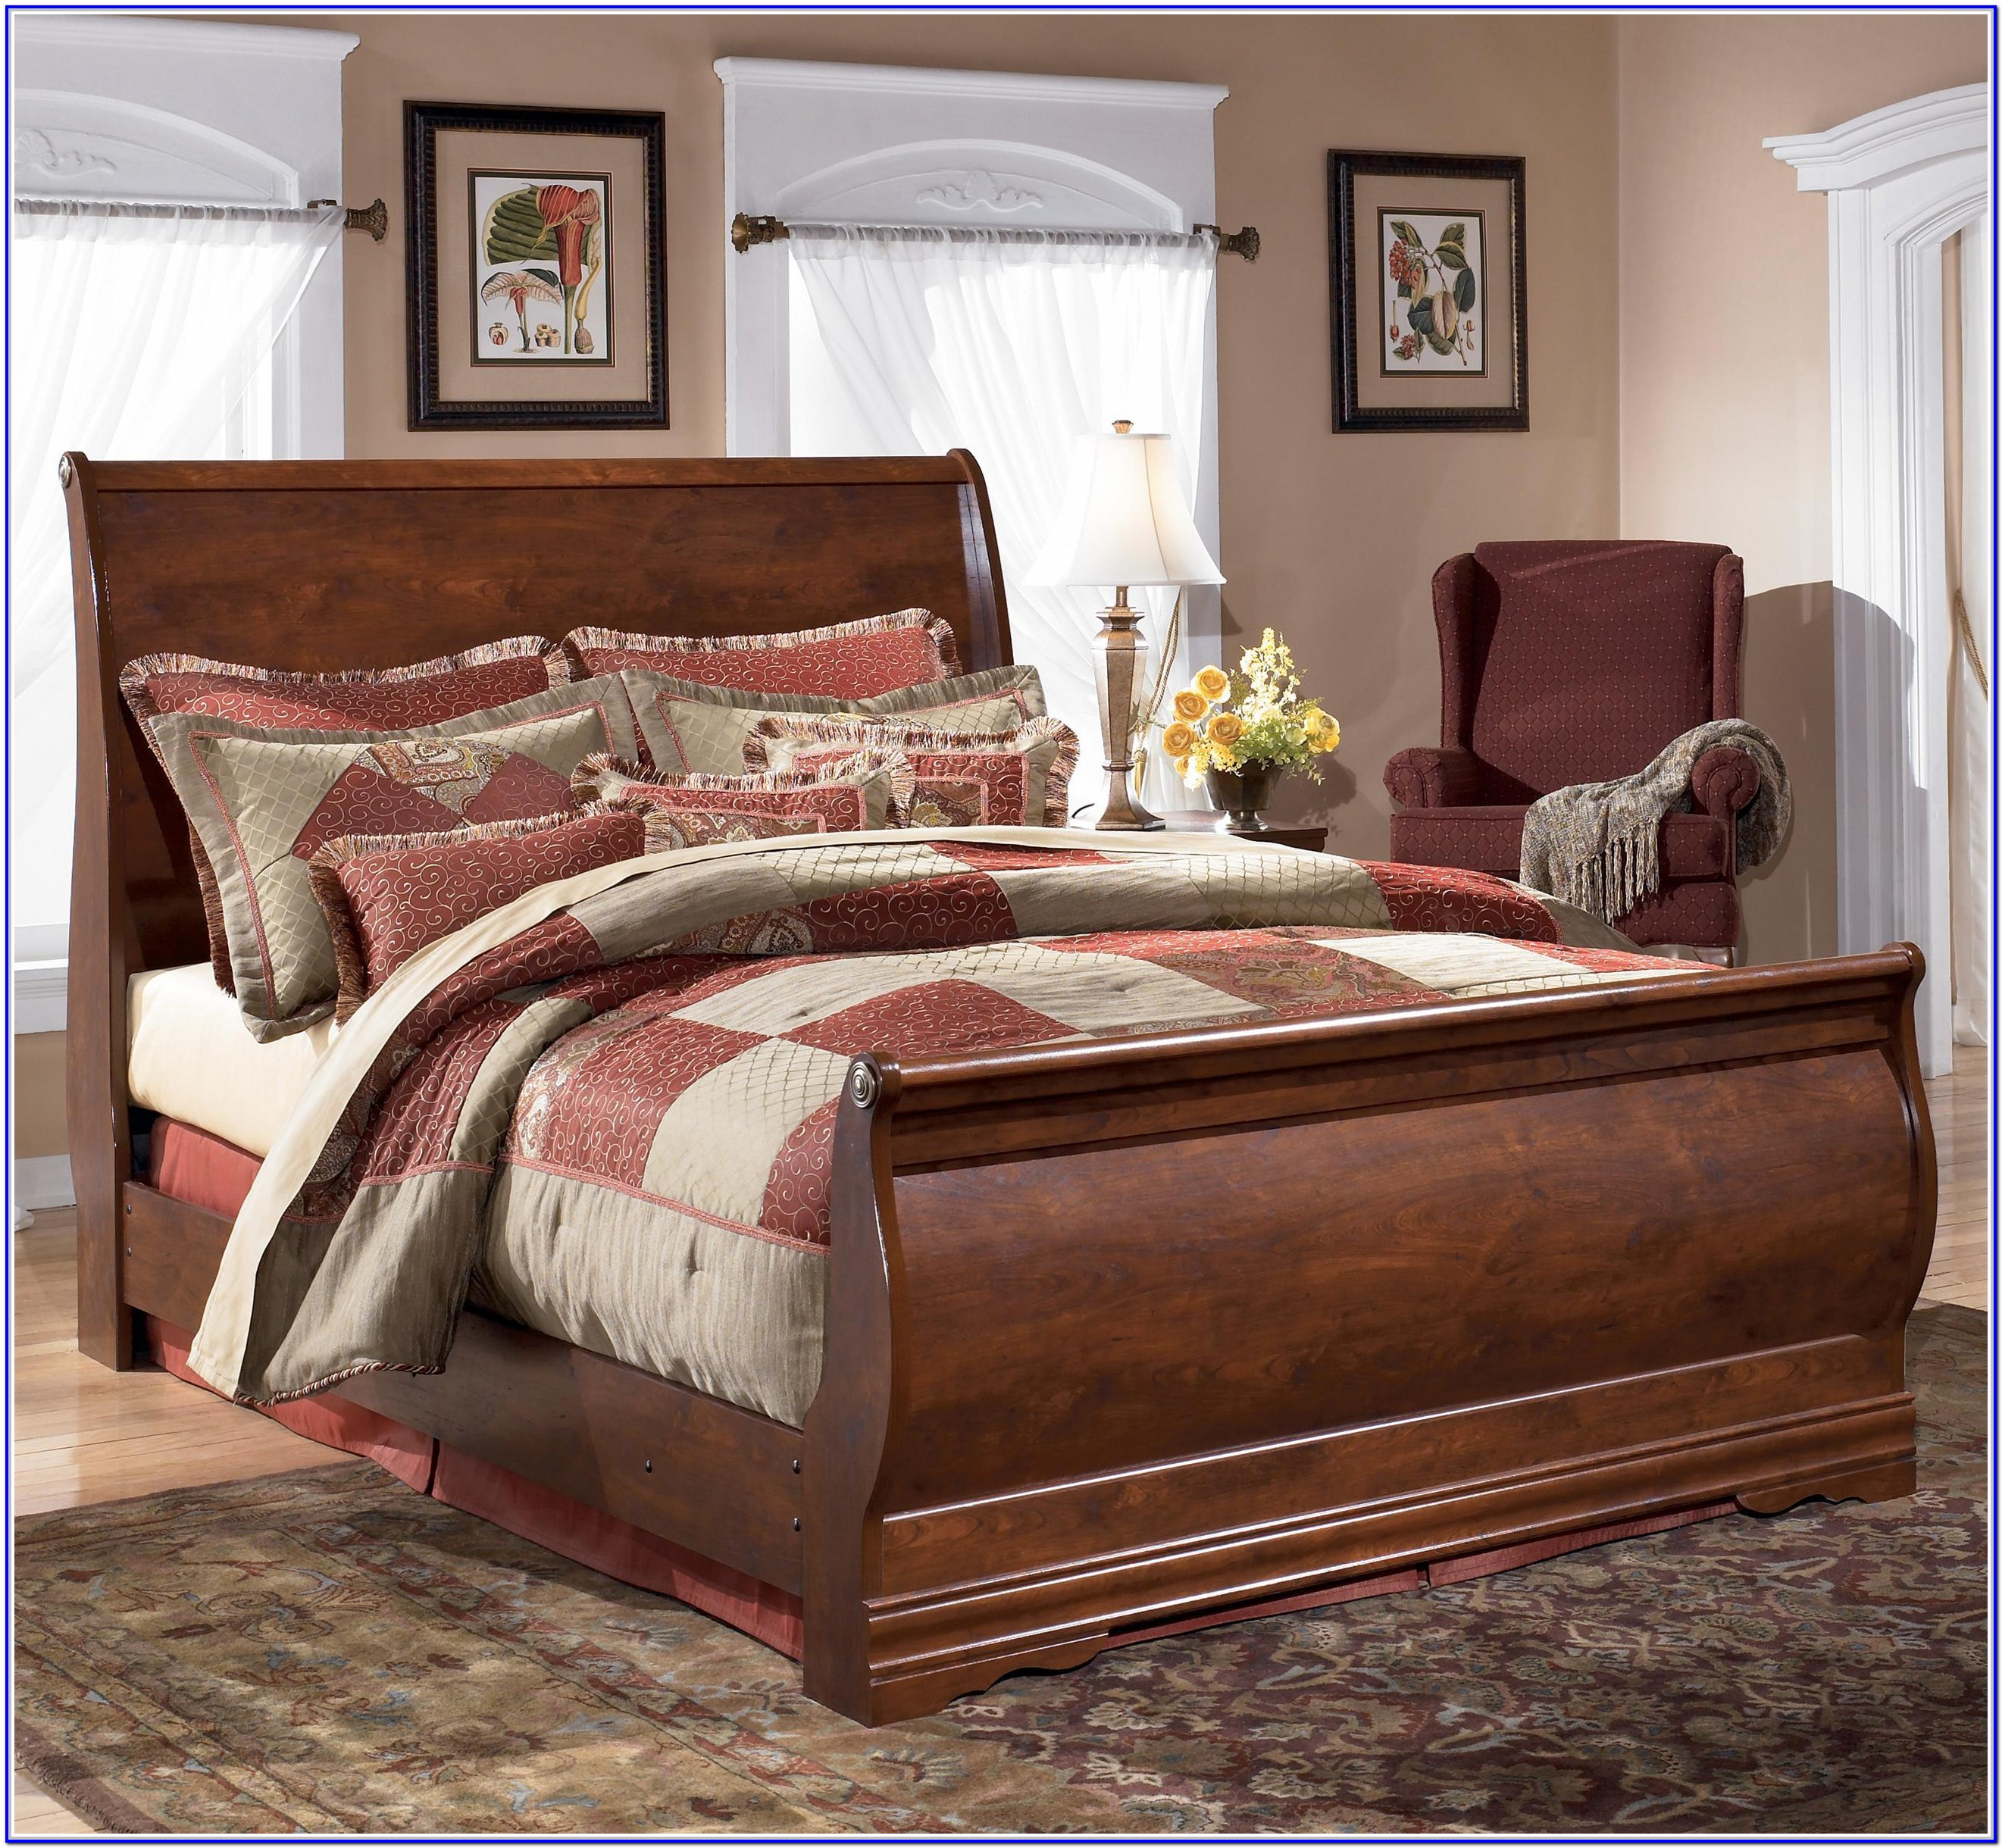 Ashley Furniture King Size Bed With Drawers